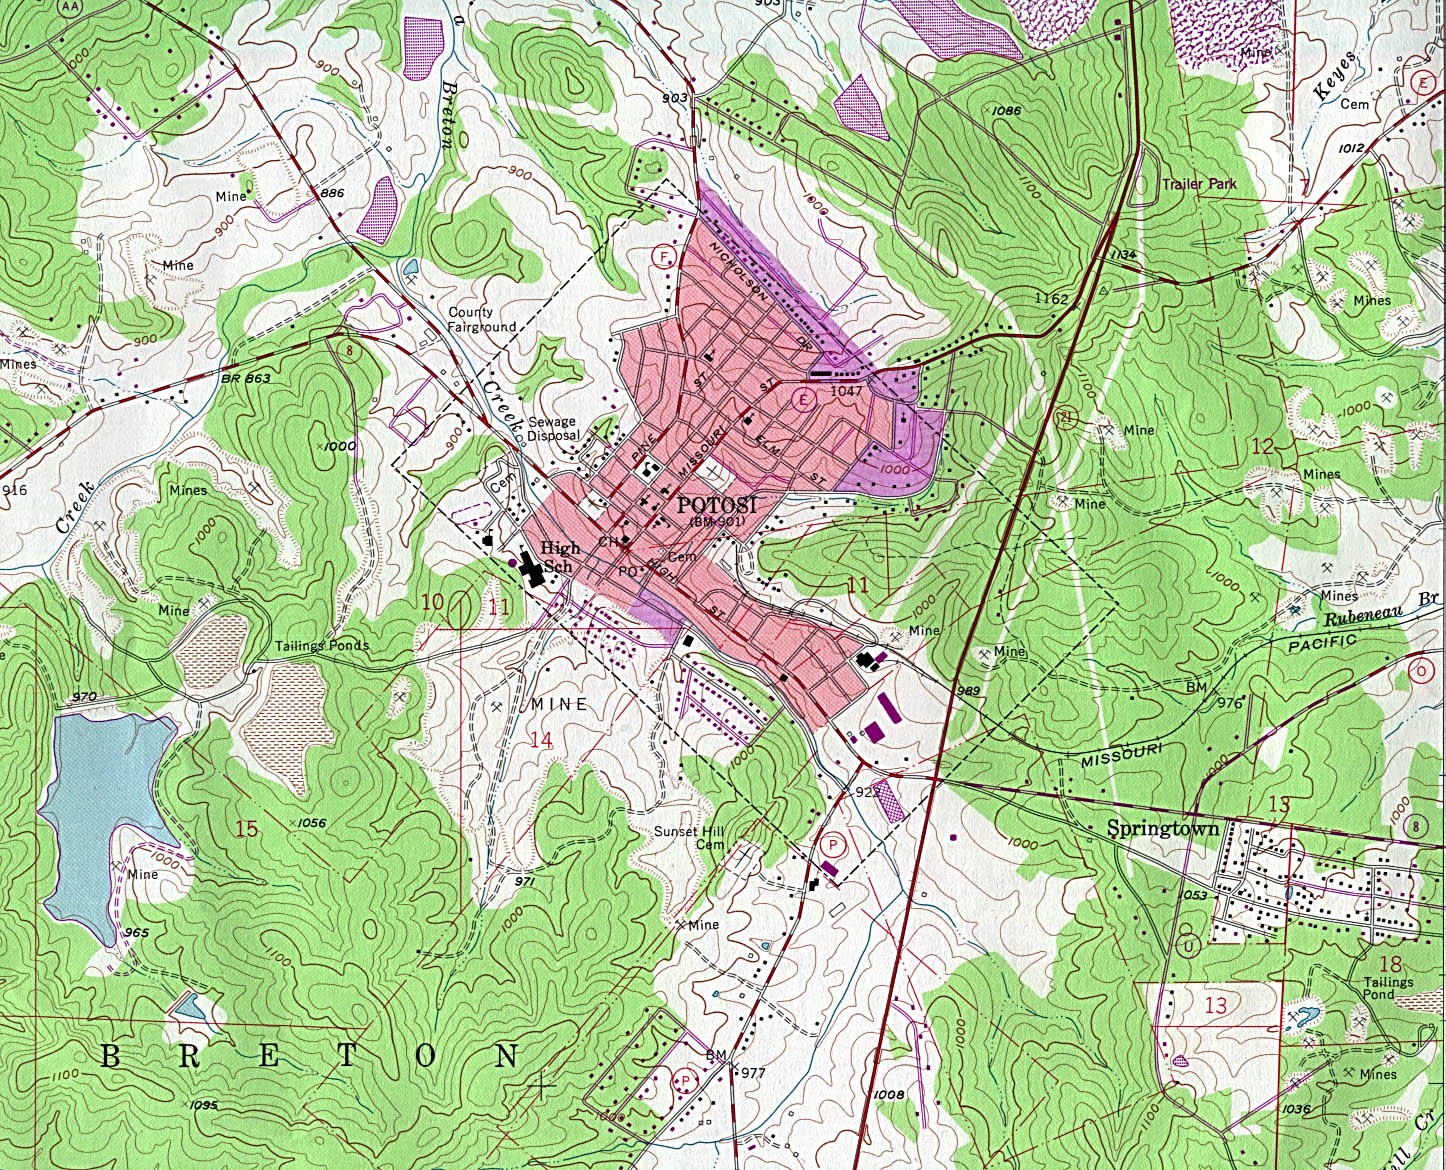 Potosi Topographic City Map, Missouri, United States